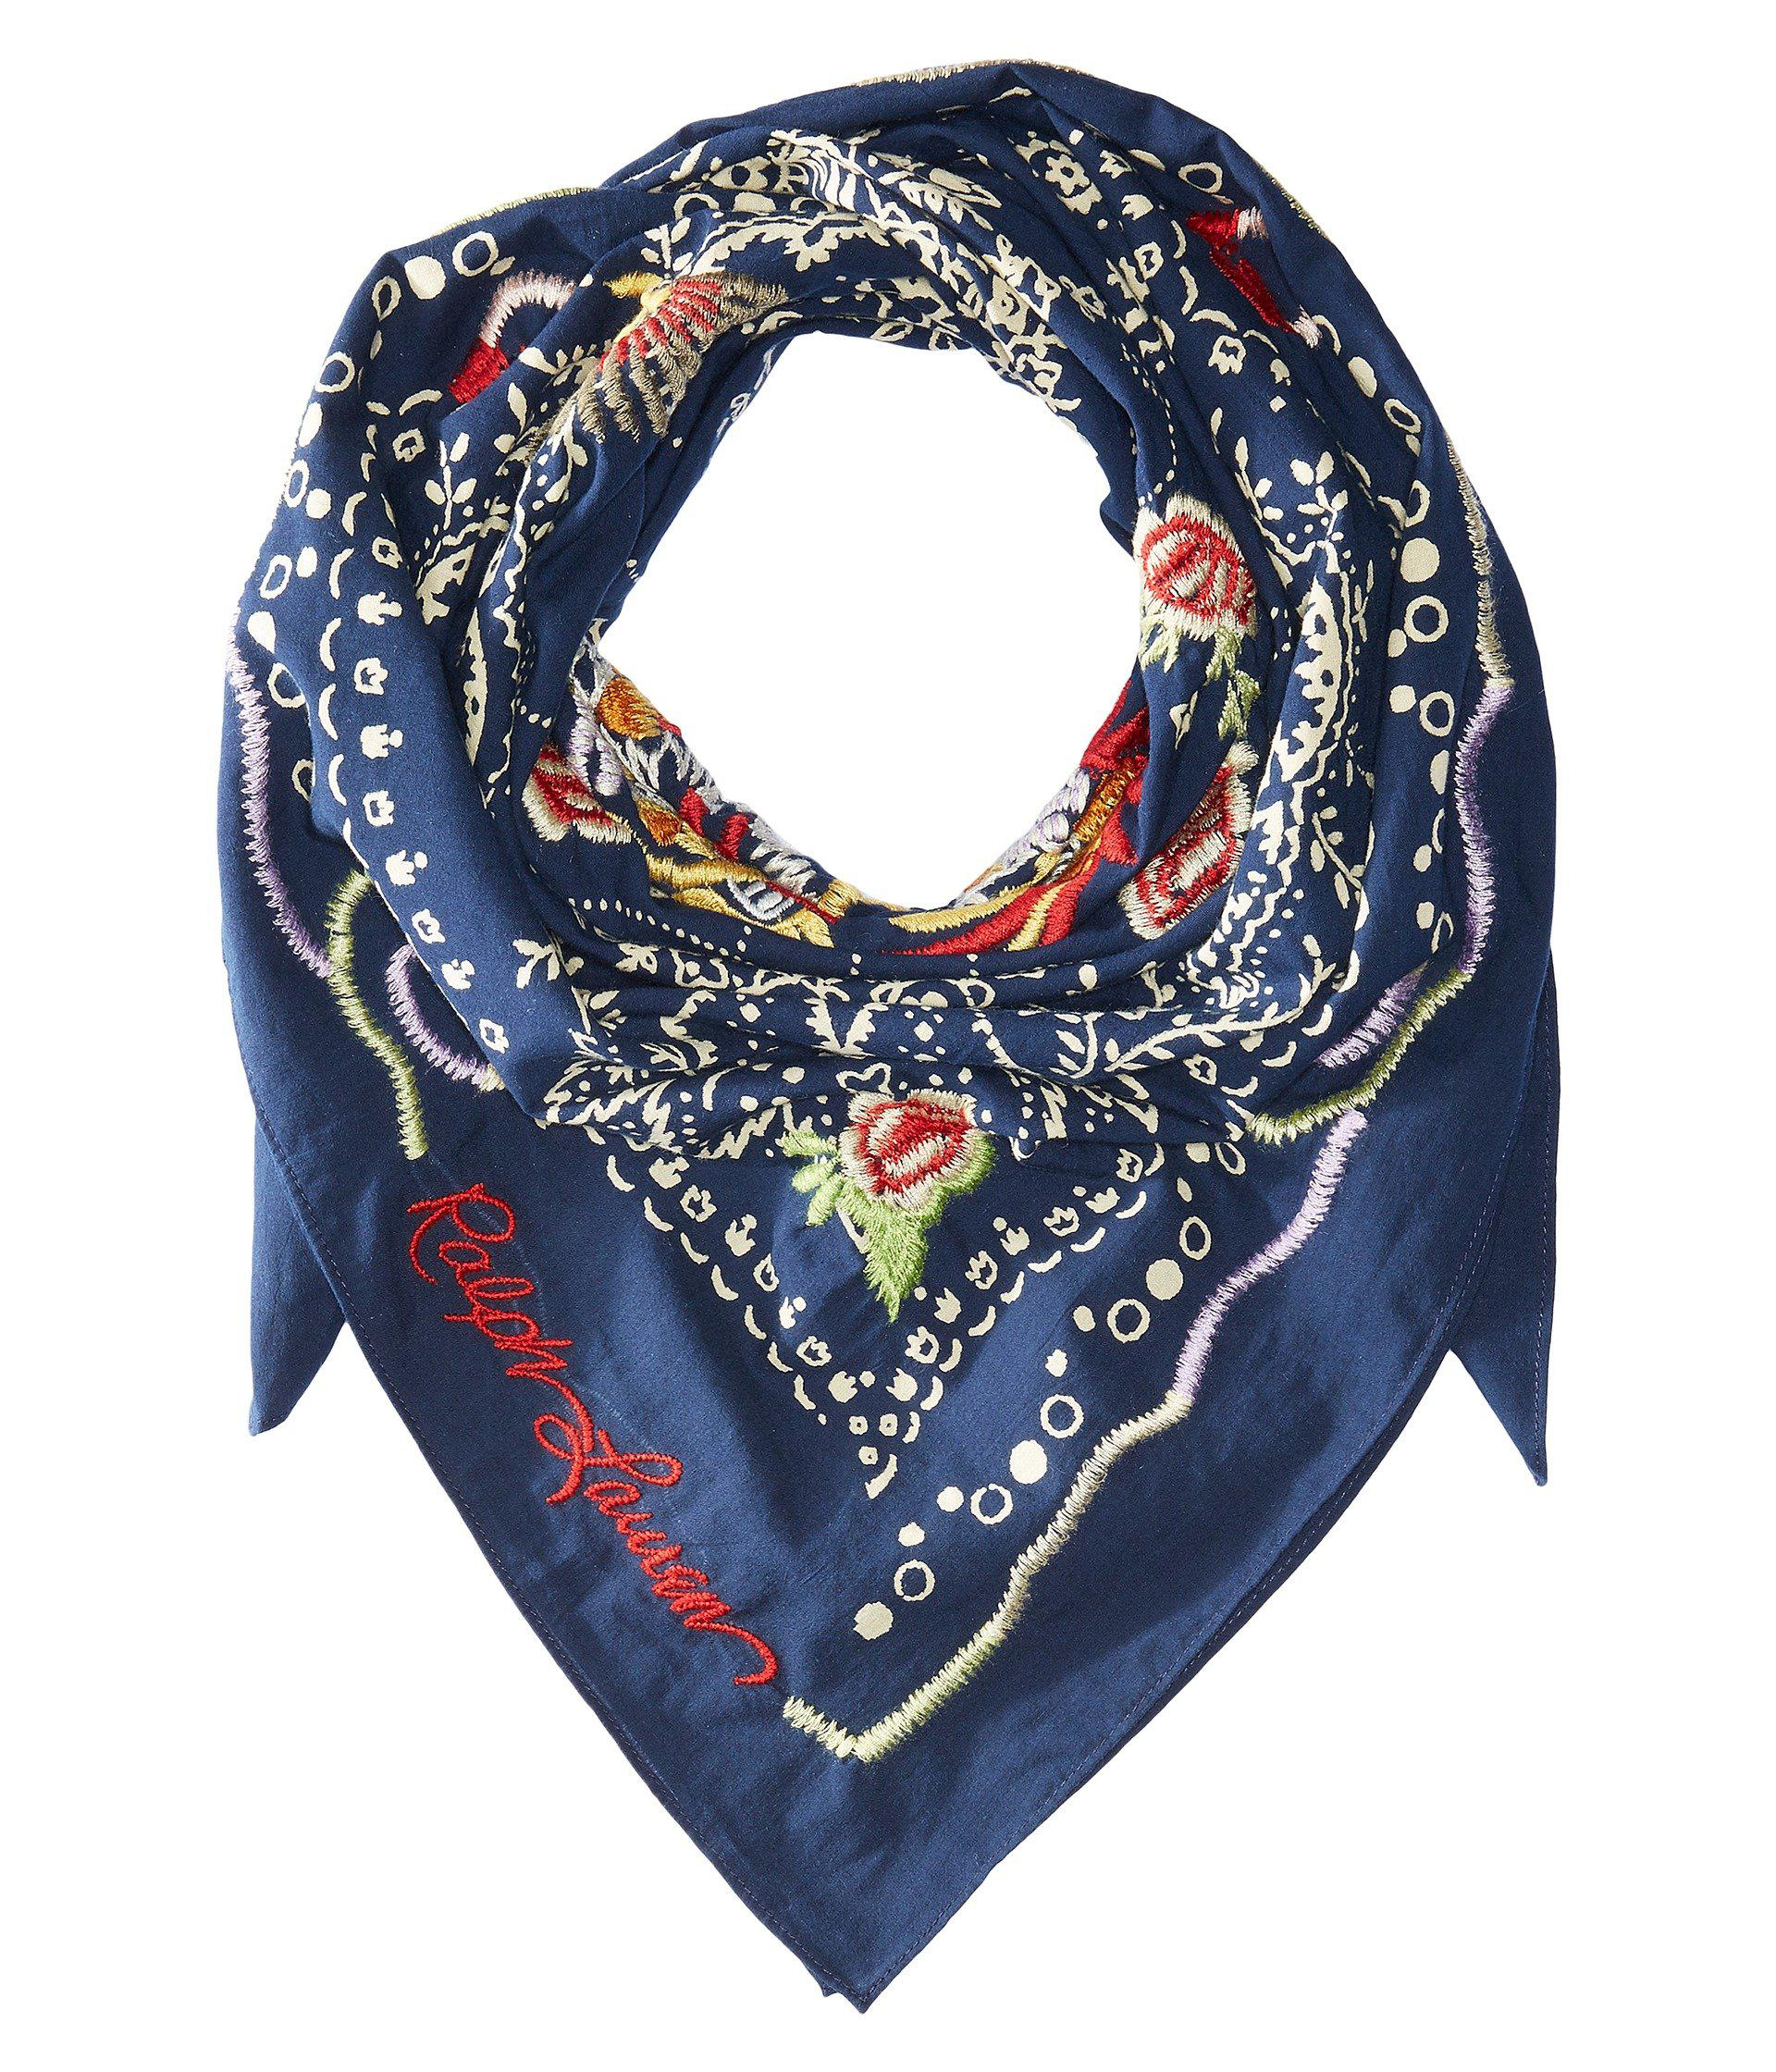 Lyst - Polo Ralph Lauren Dragon Embroidered Cotton Bandana Scarf in Blue